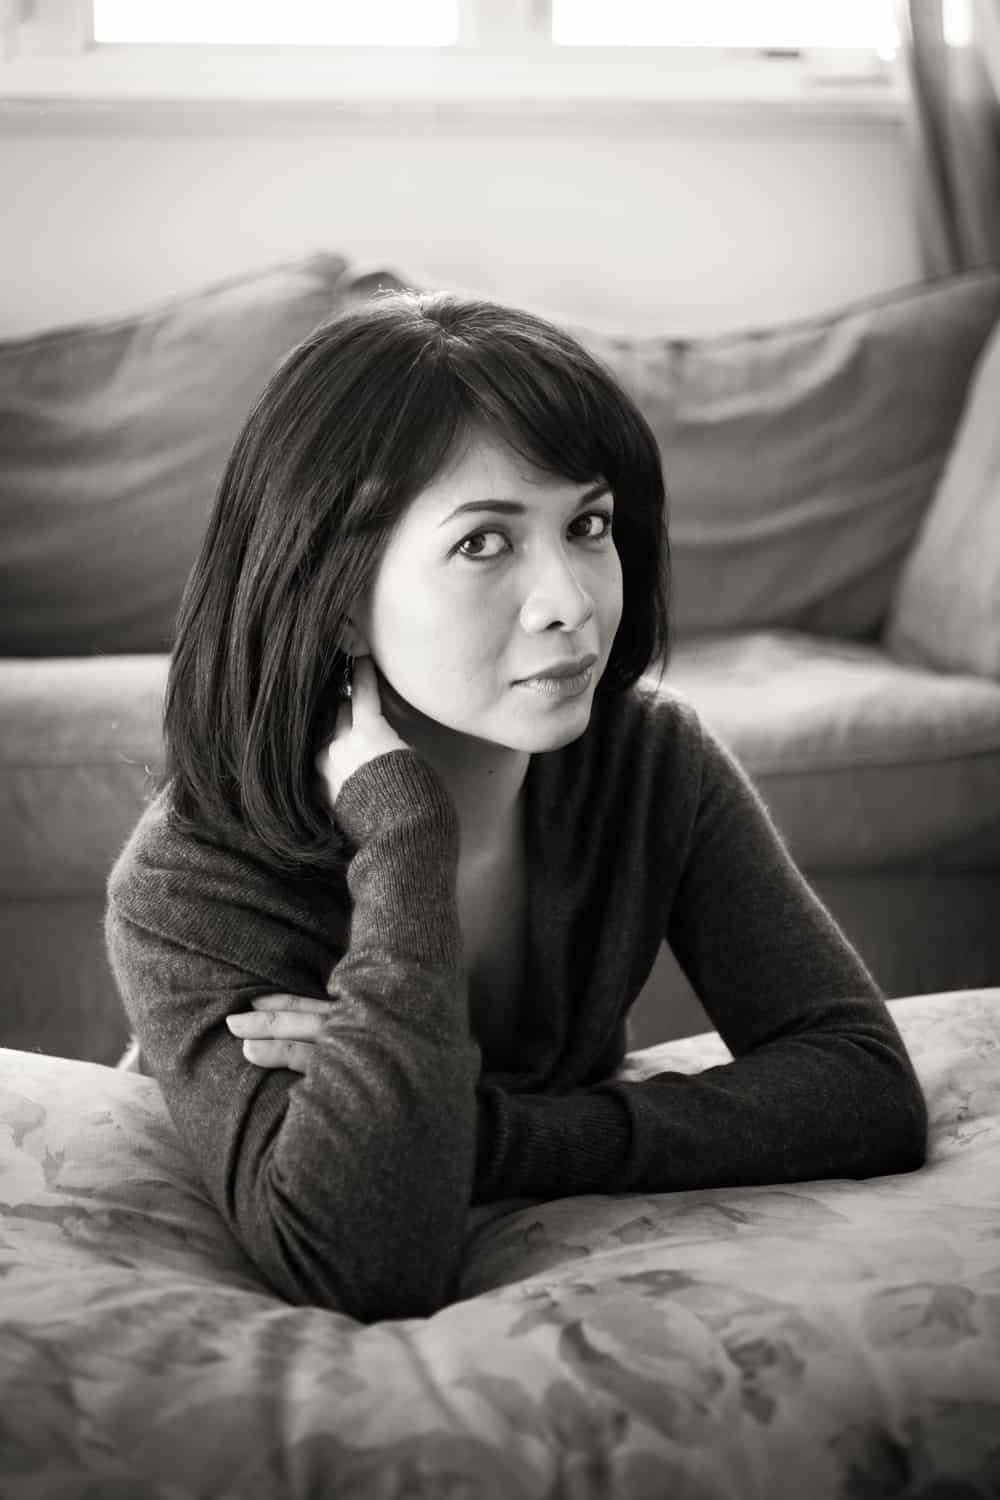 Black and white photo of woman with short black hair wearing sweater